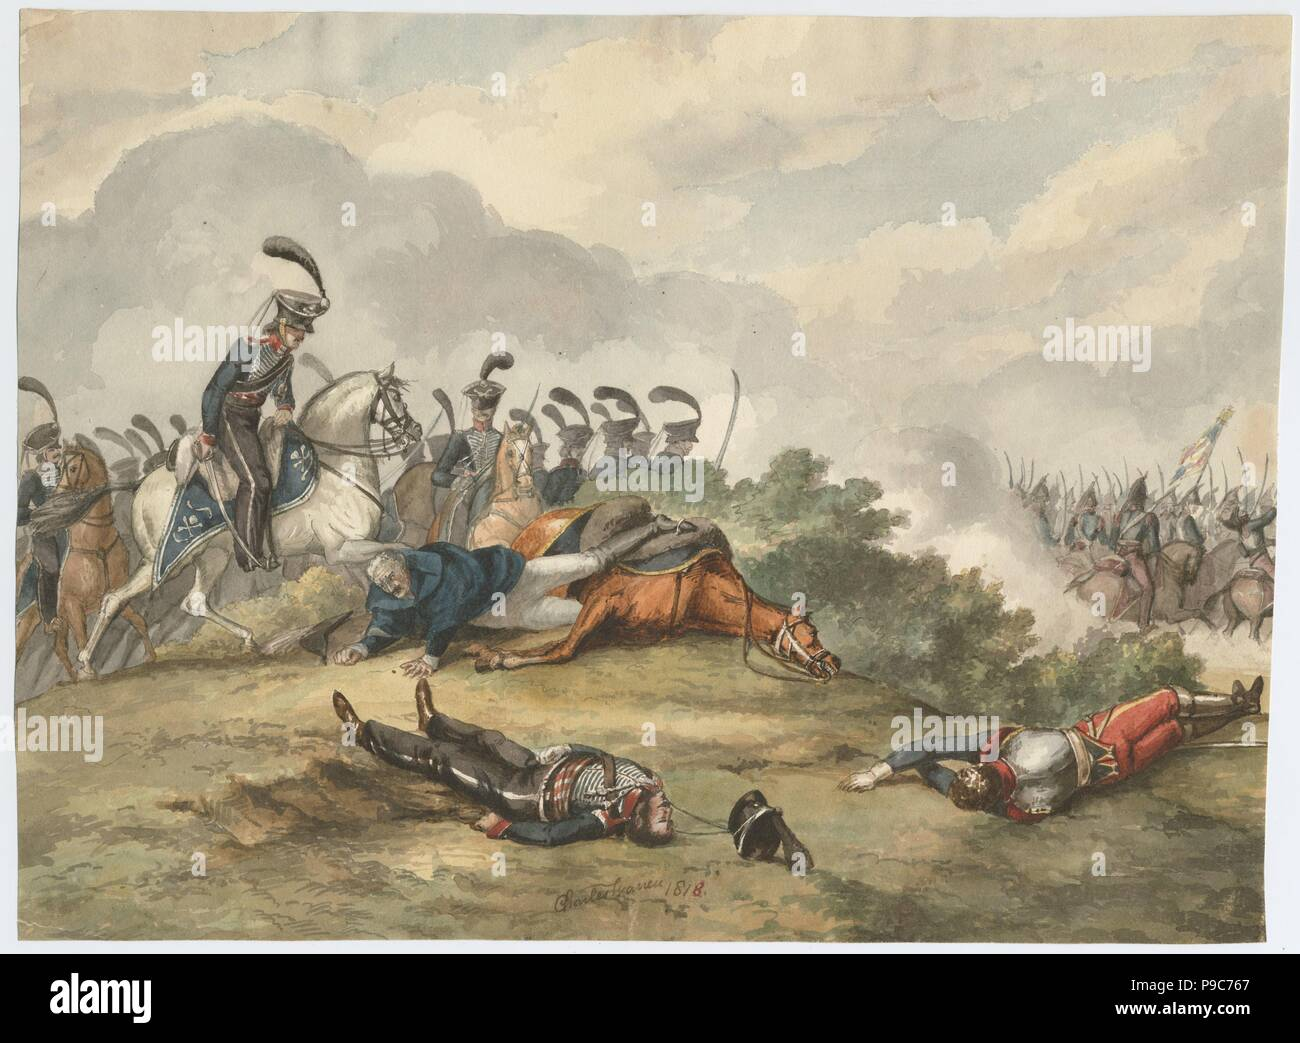 Marshal Blücher at the Battle of Ligny on 16 June 1815. Museum: PRIVATE COLLECTION. - Stock Image